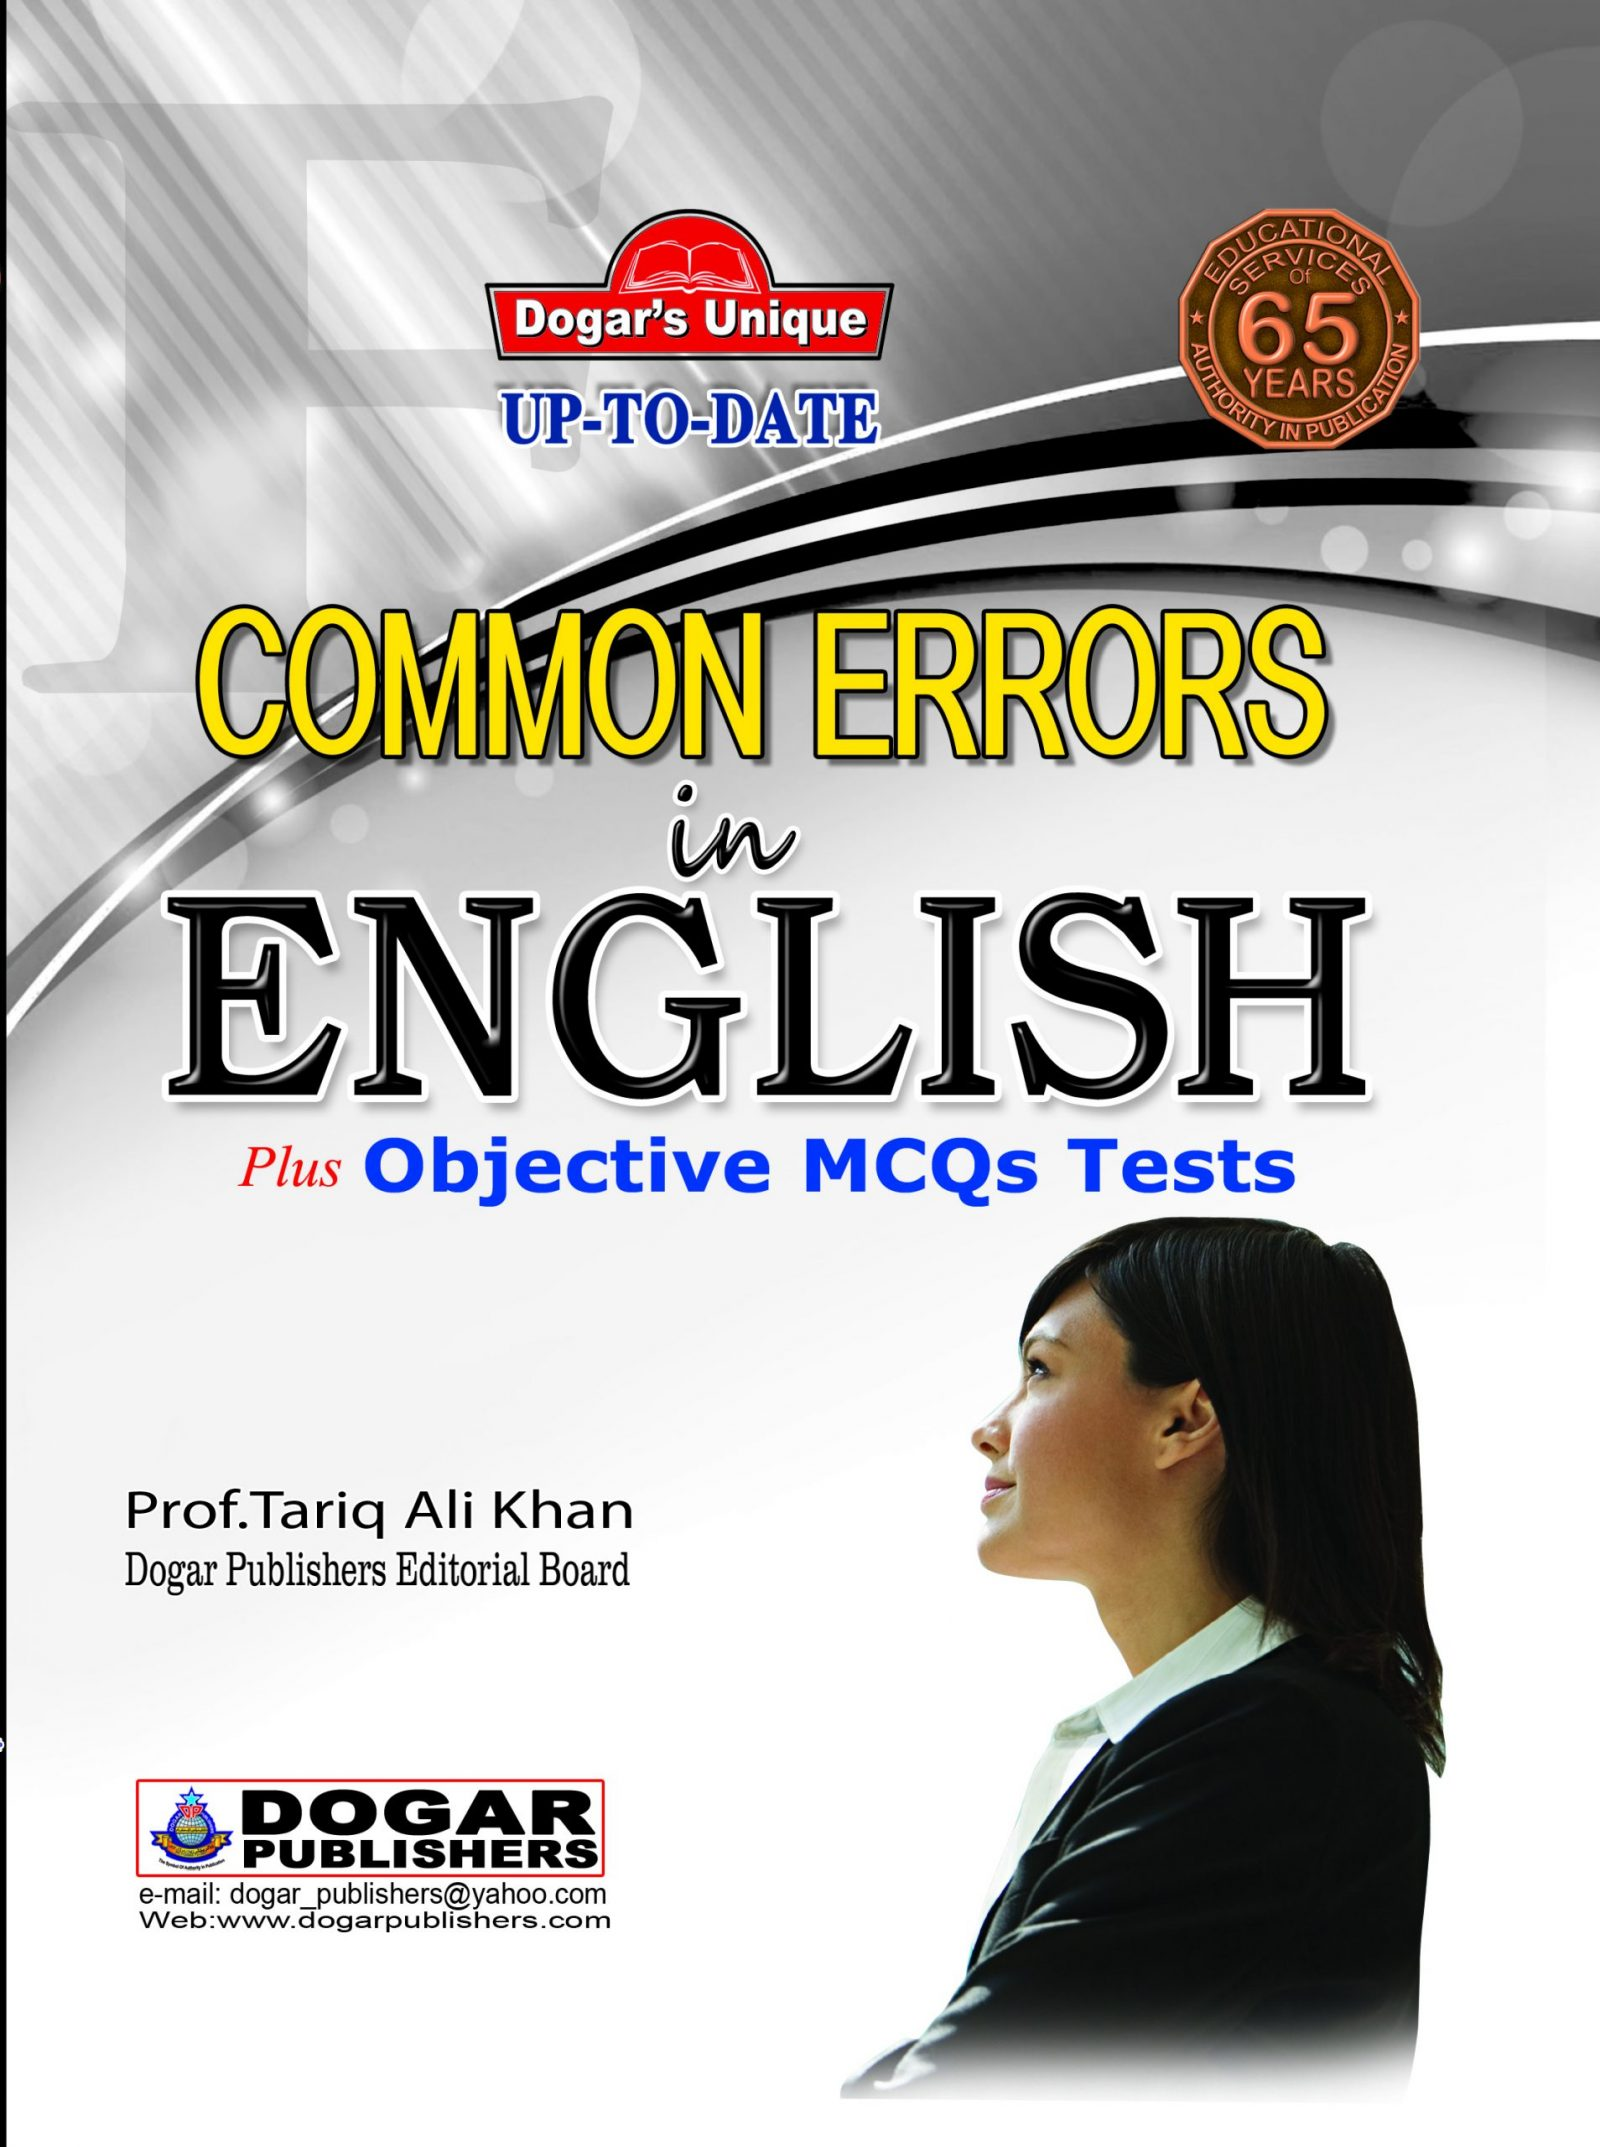 Common Errors In English plus Objective MCQS Tests